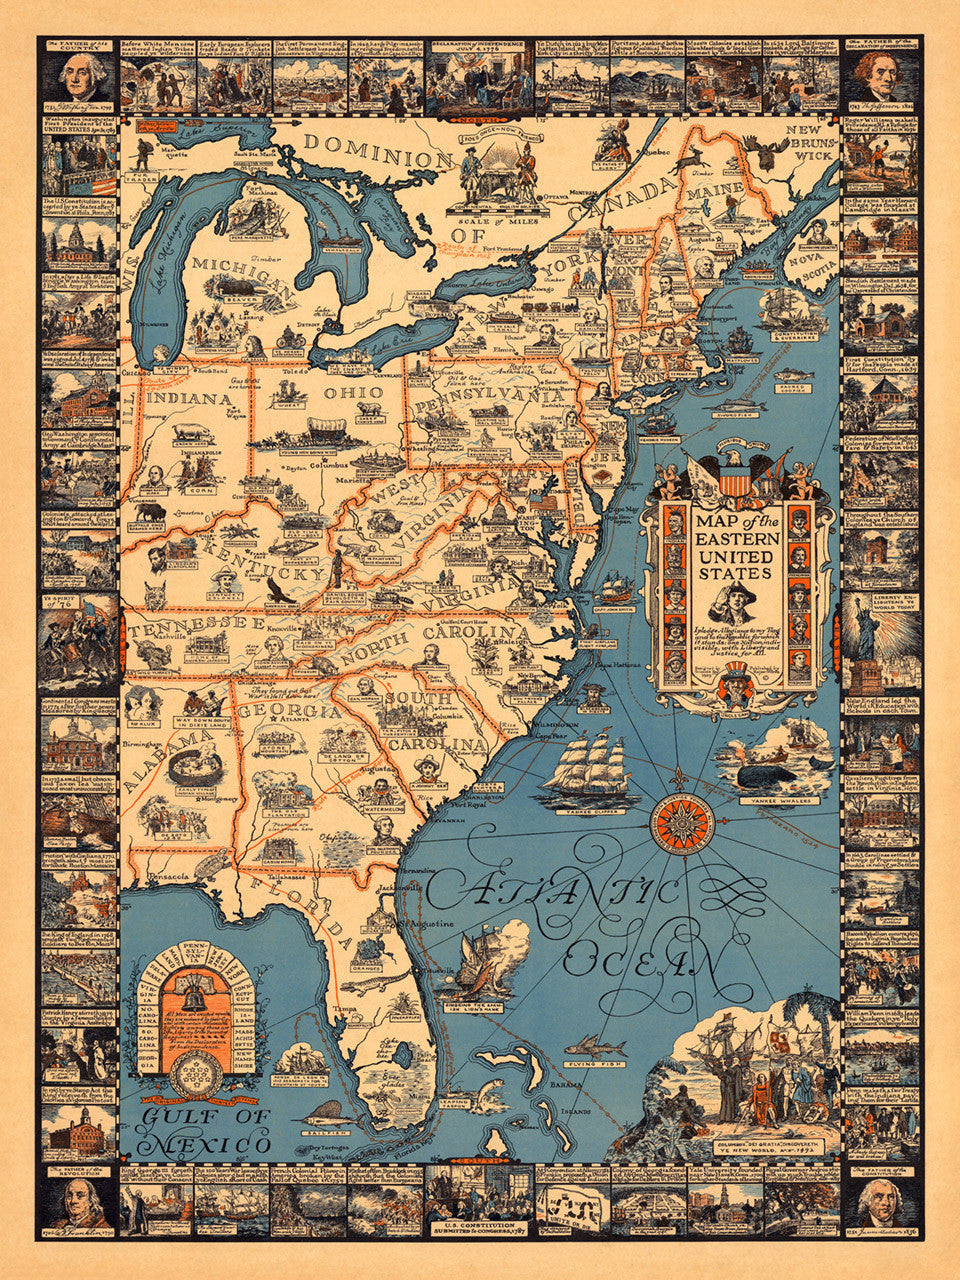 Historical Pictorial Map of the Eastern United States | Battlemaps.us